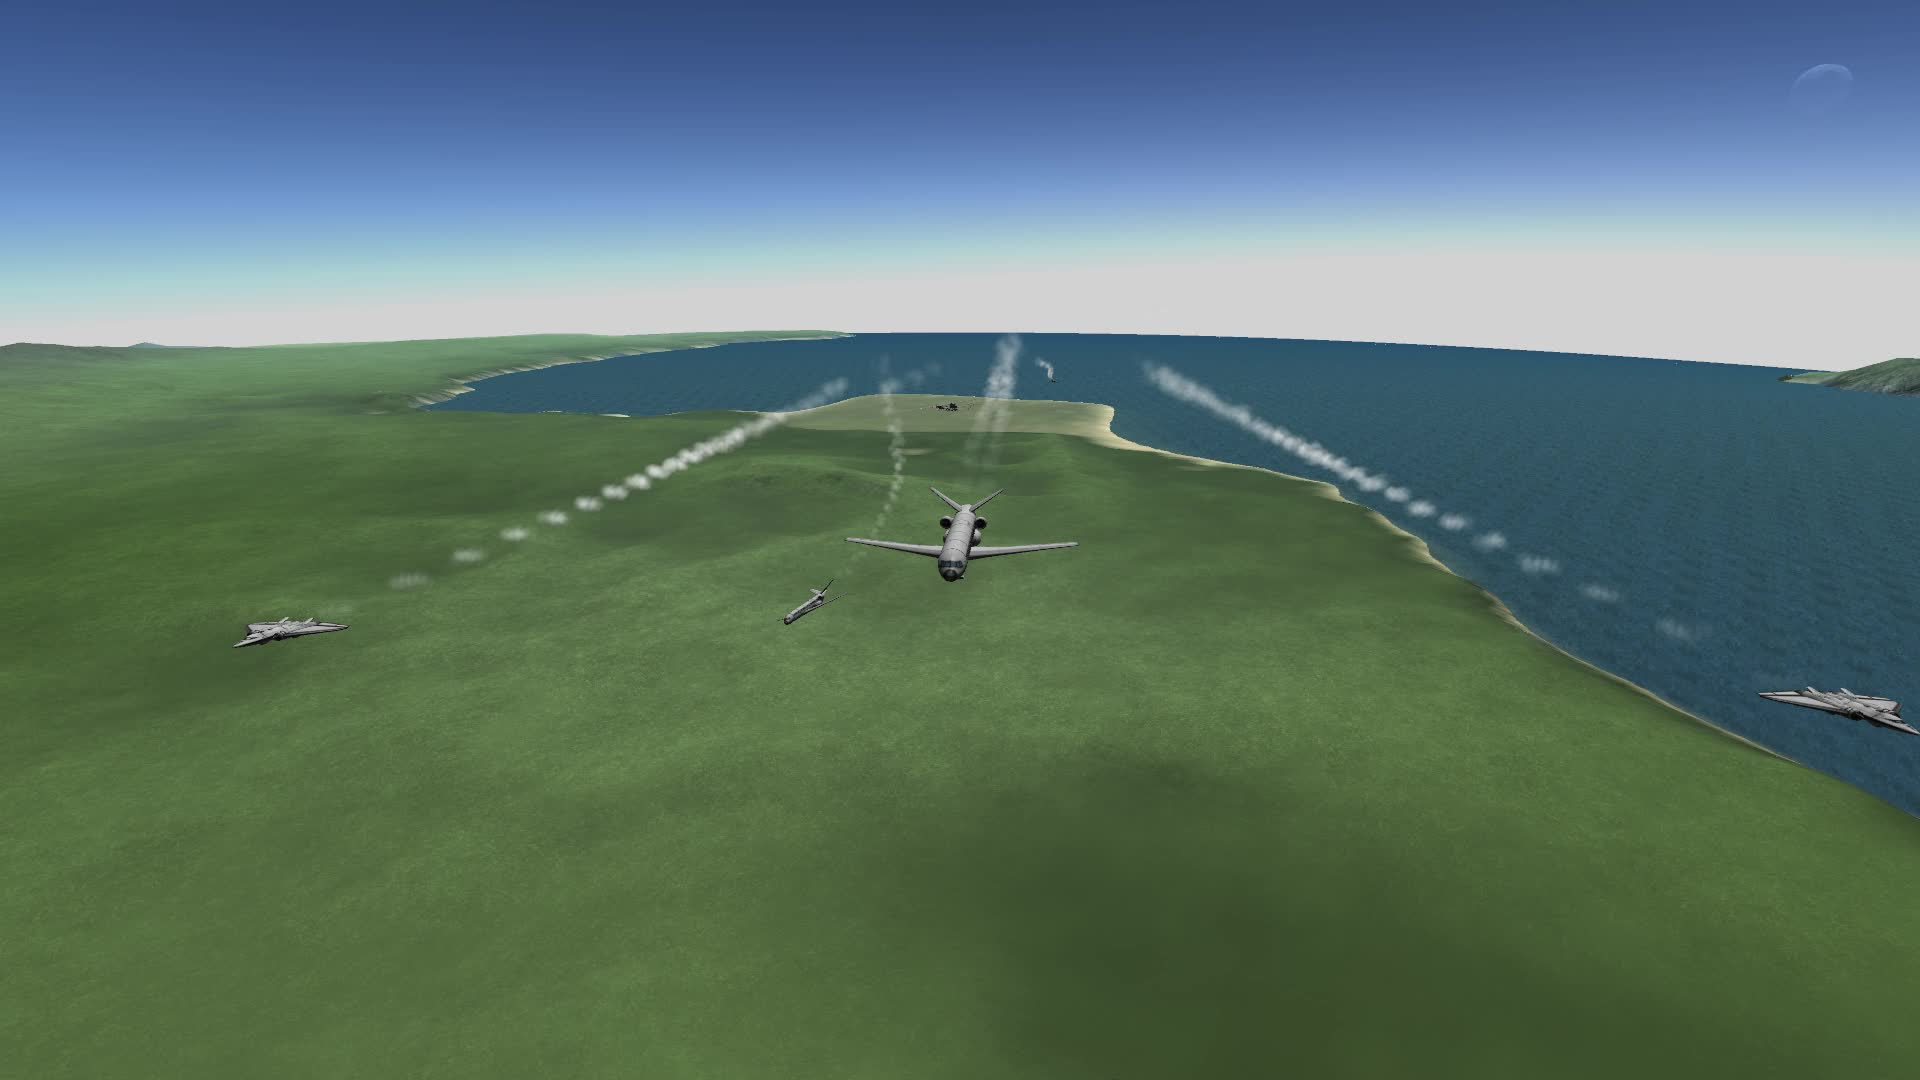 kerbalspaceprogram, Kerbal Space Program 2018.10.05 - 19.49.44.04 GIFs